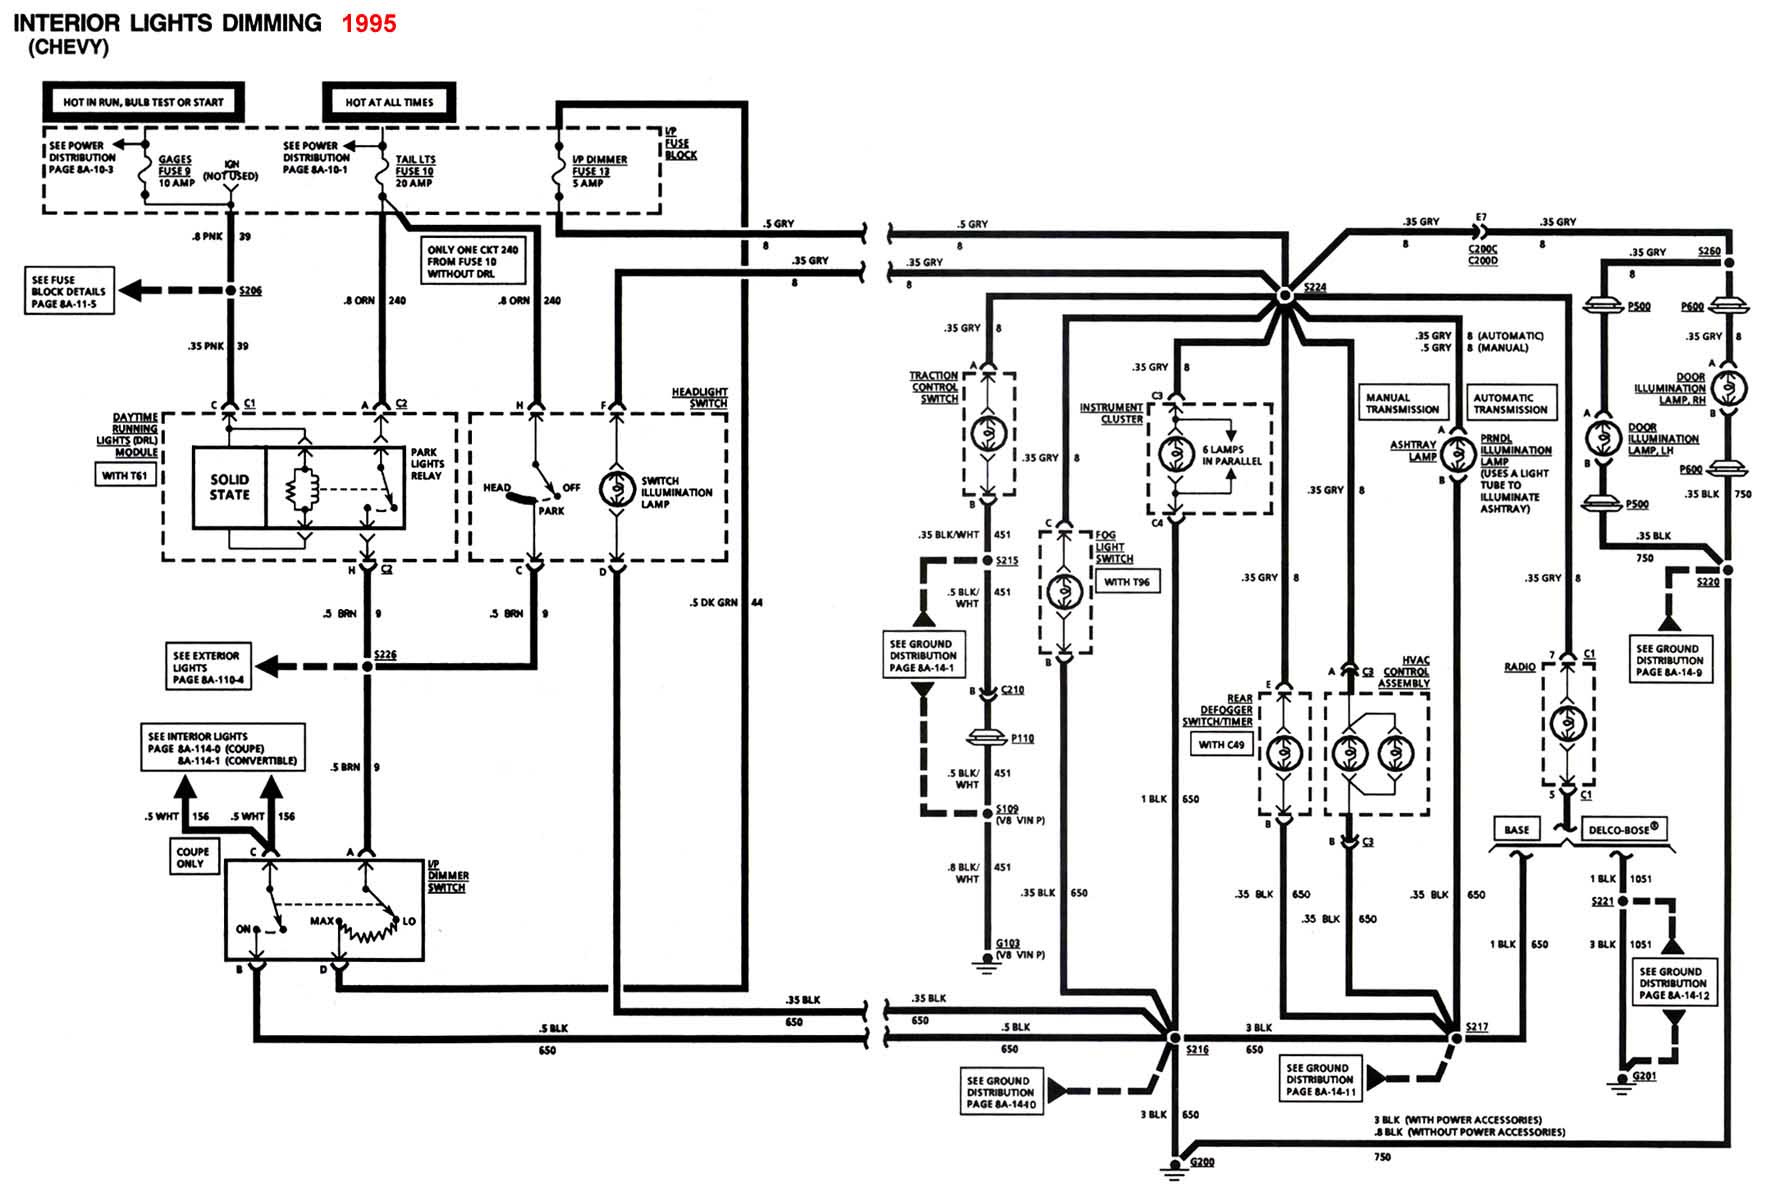 hight resolution of 1995 chevy camaro wiring schematic wiring diagram schematics rh ksefanzone com 97 camaro stereo wiring diagram 97 camaro ignition switch wiring diagram